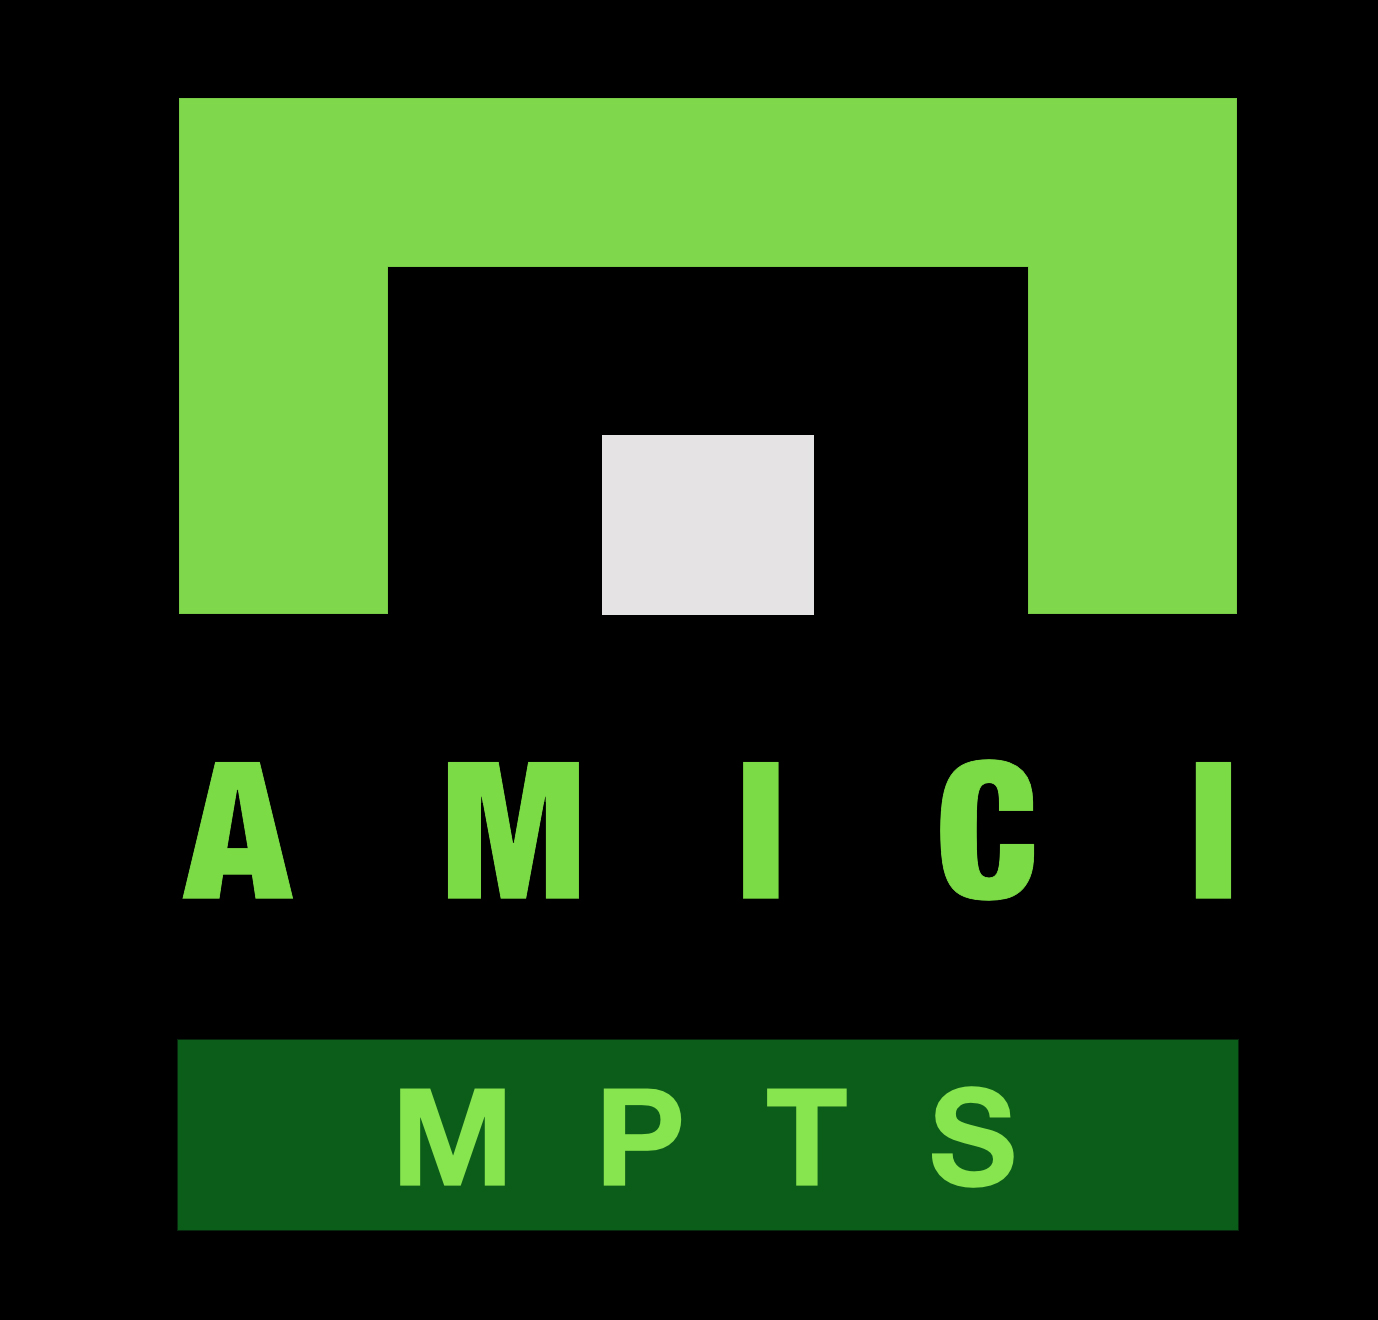 Amici MPTS Logo - White DOT - Black Background